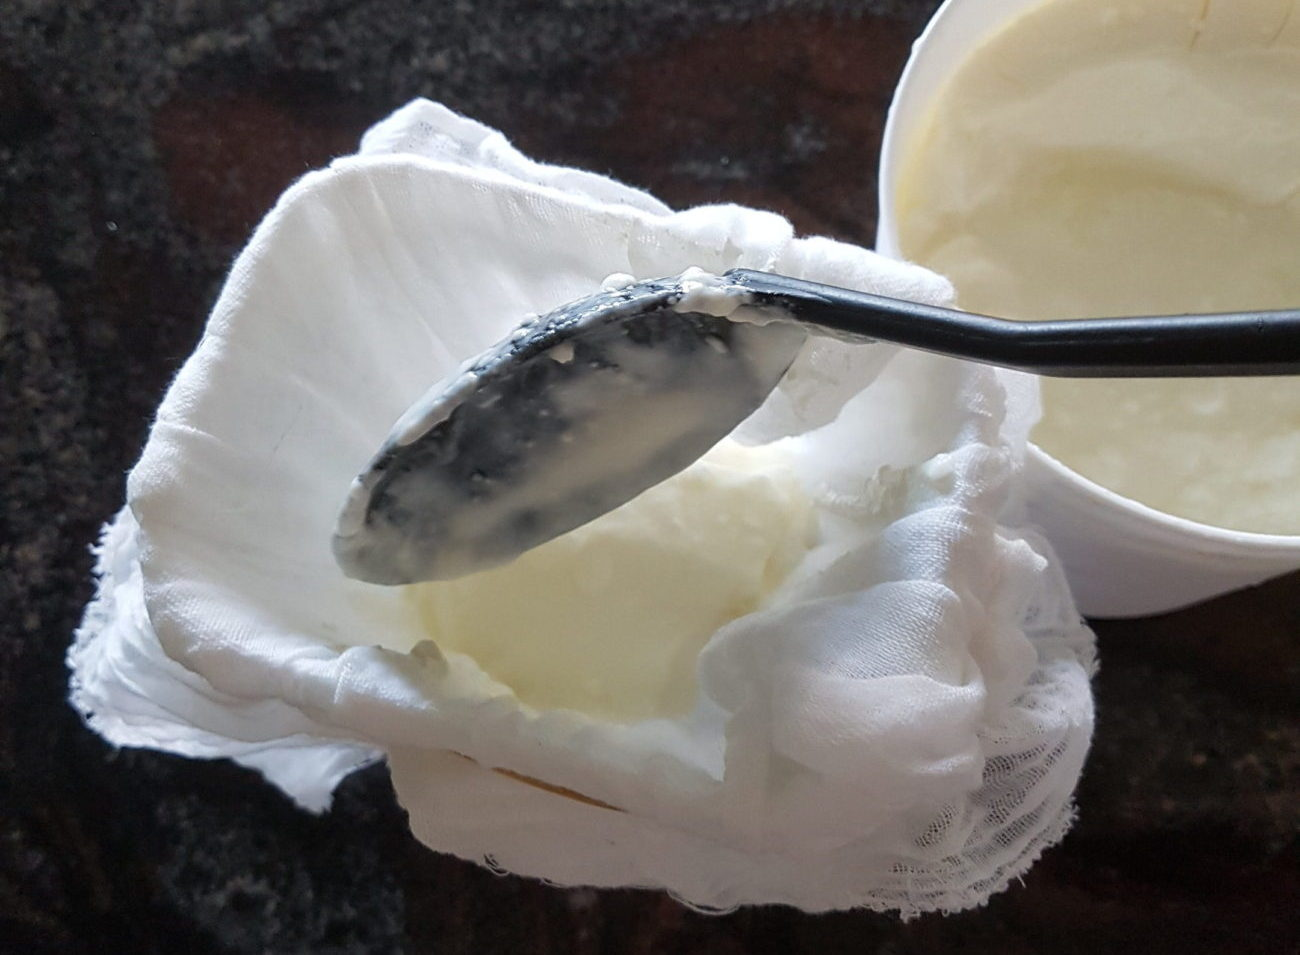 Making Natural and Greek Yoghurt